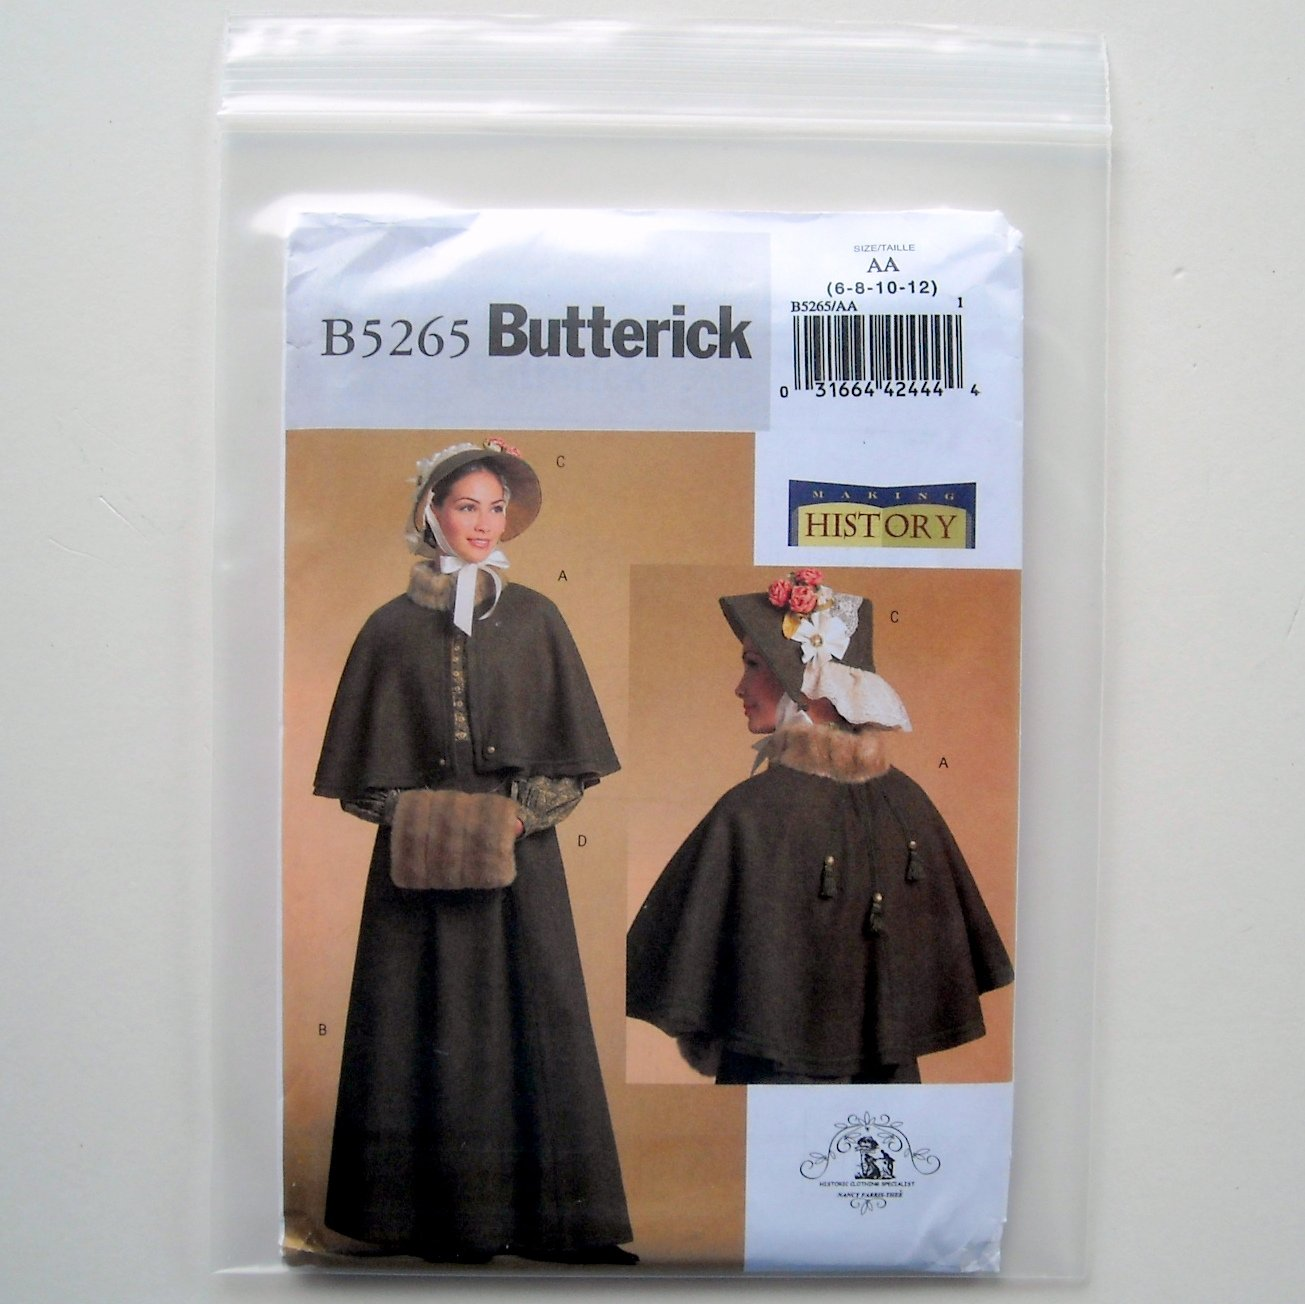 Butterick Misses Historical Costume Sewing Pattern Size AA 6 - 12 B5265